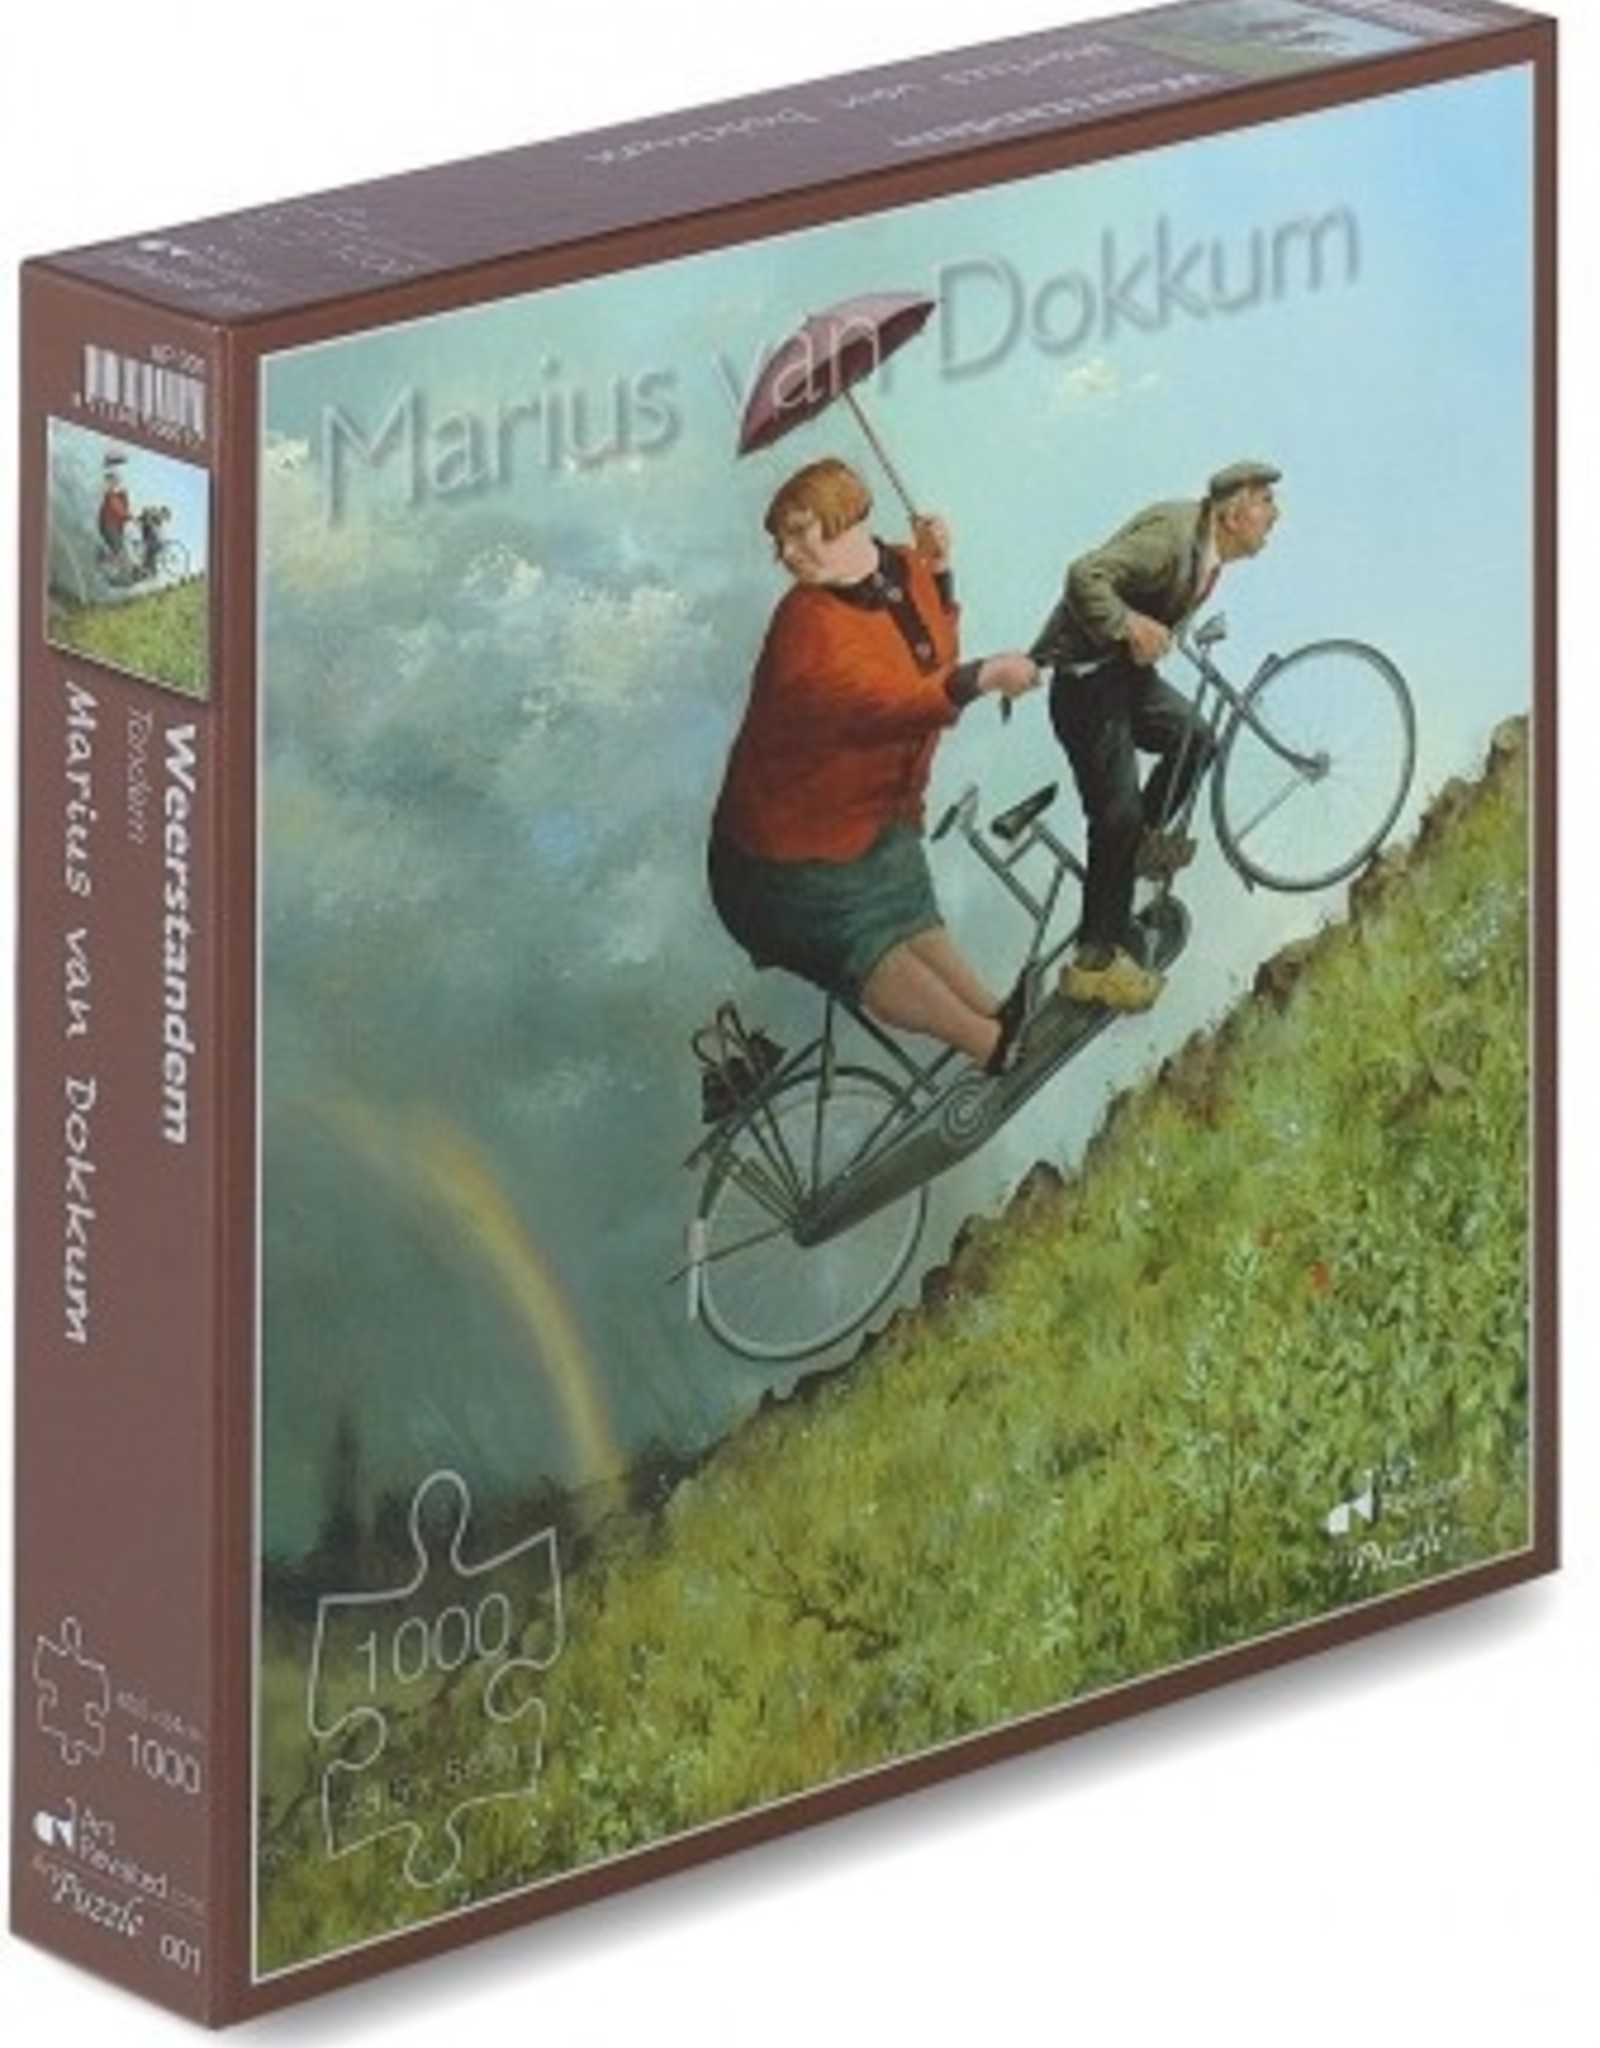 Art Revisited Puzzle Marius van Dokkum 1000 pieces